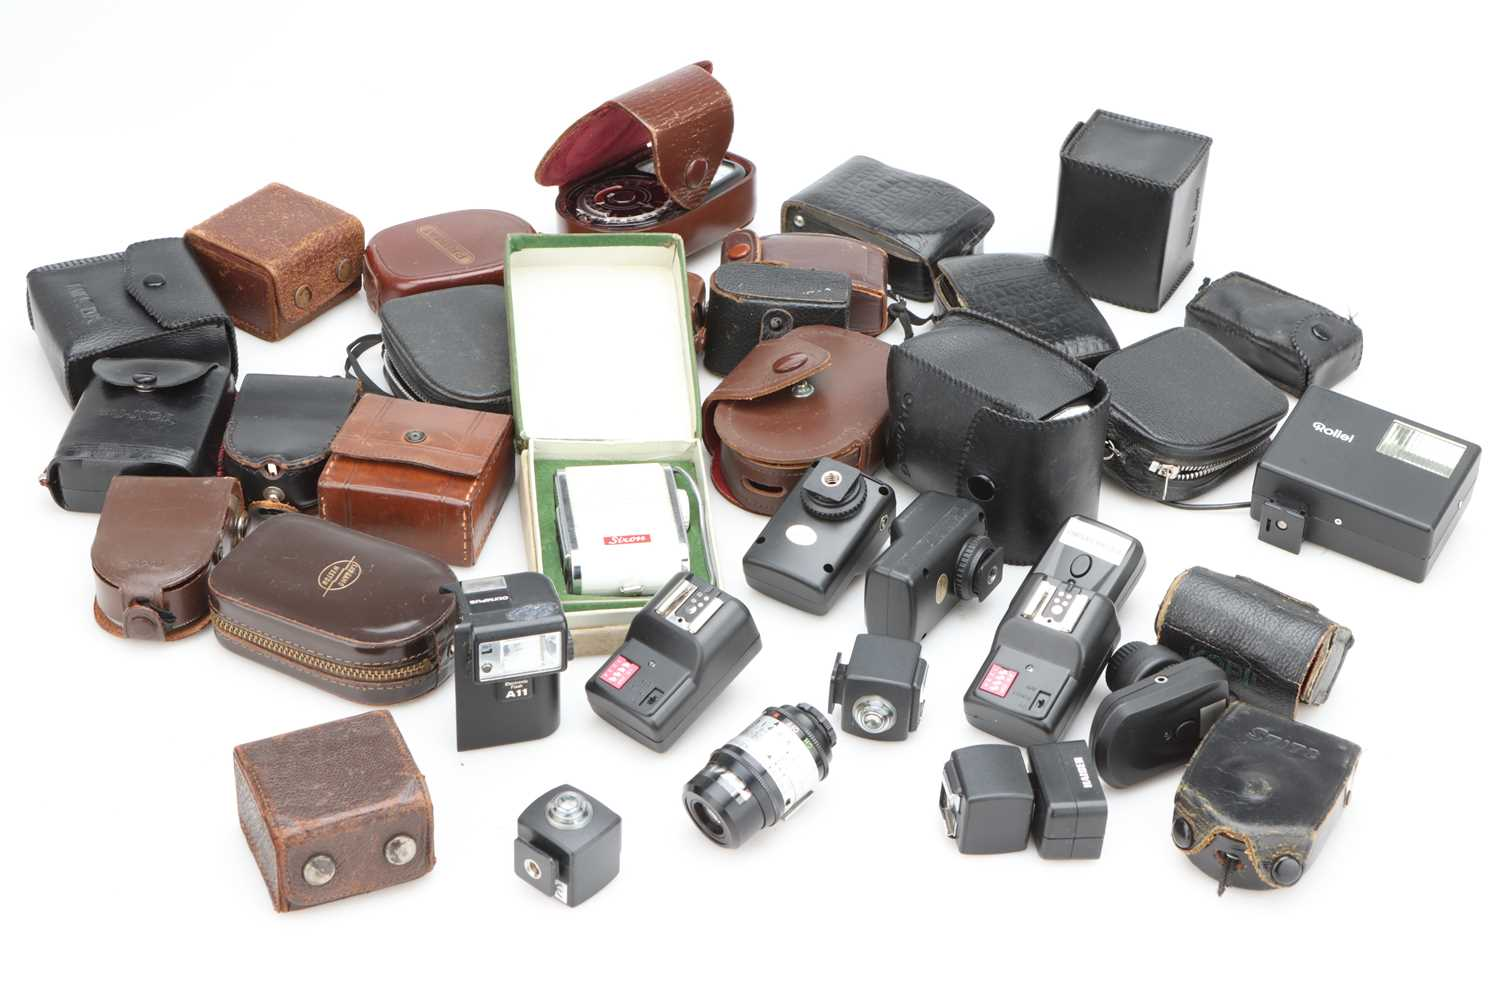 A Selection of Various Light Meters & Flash Equipment,